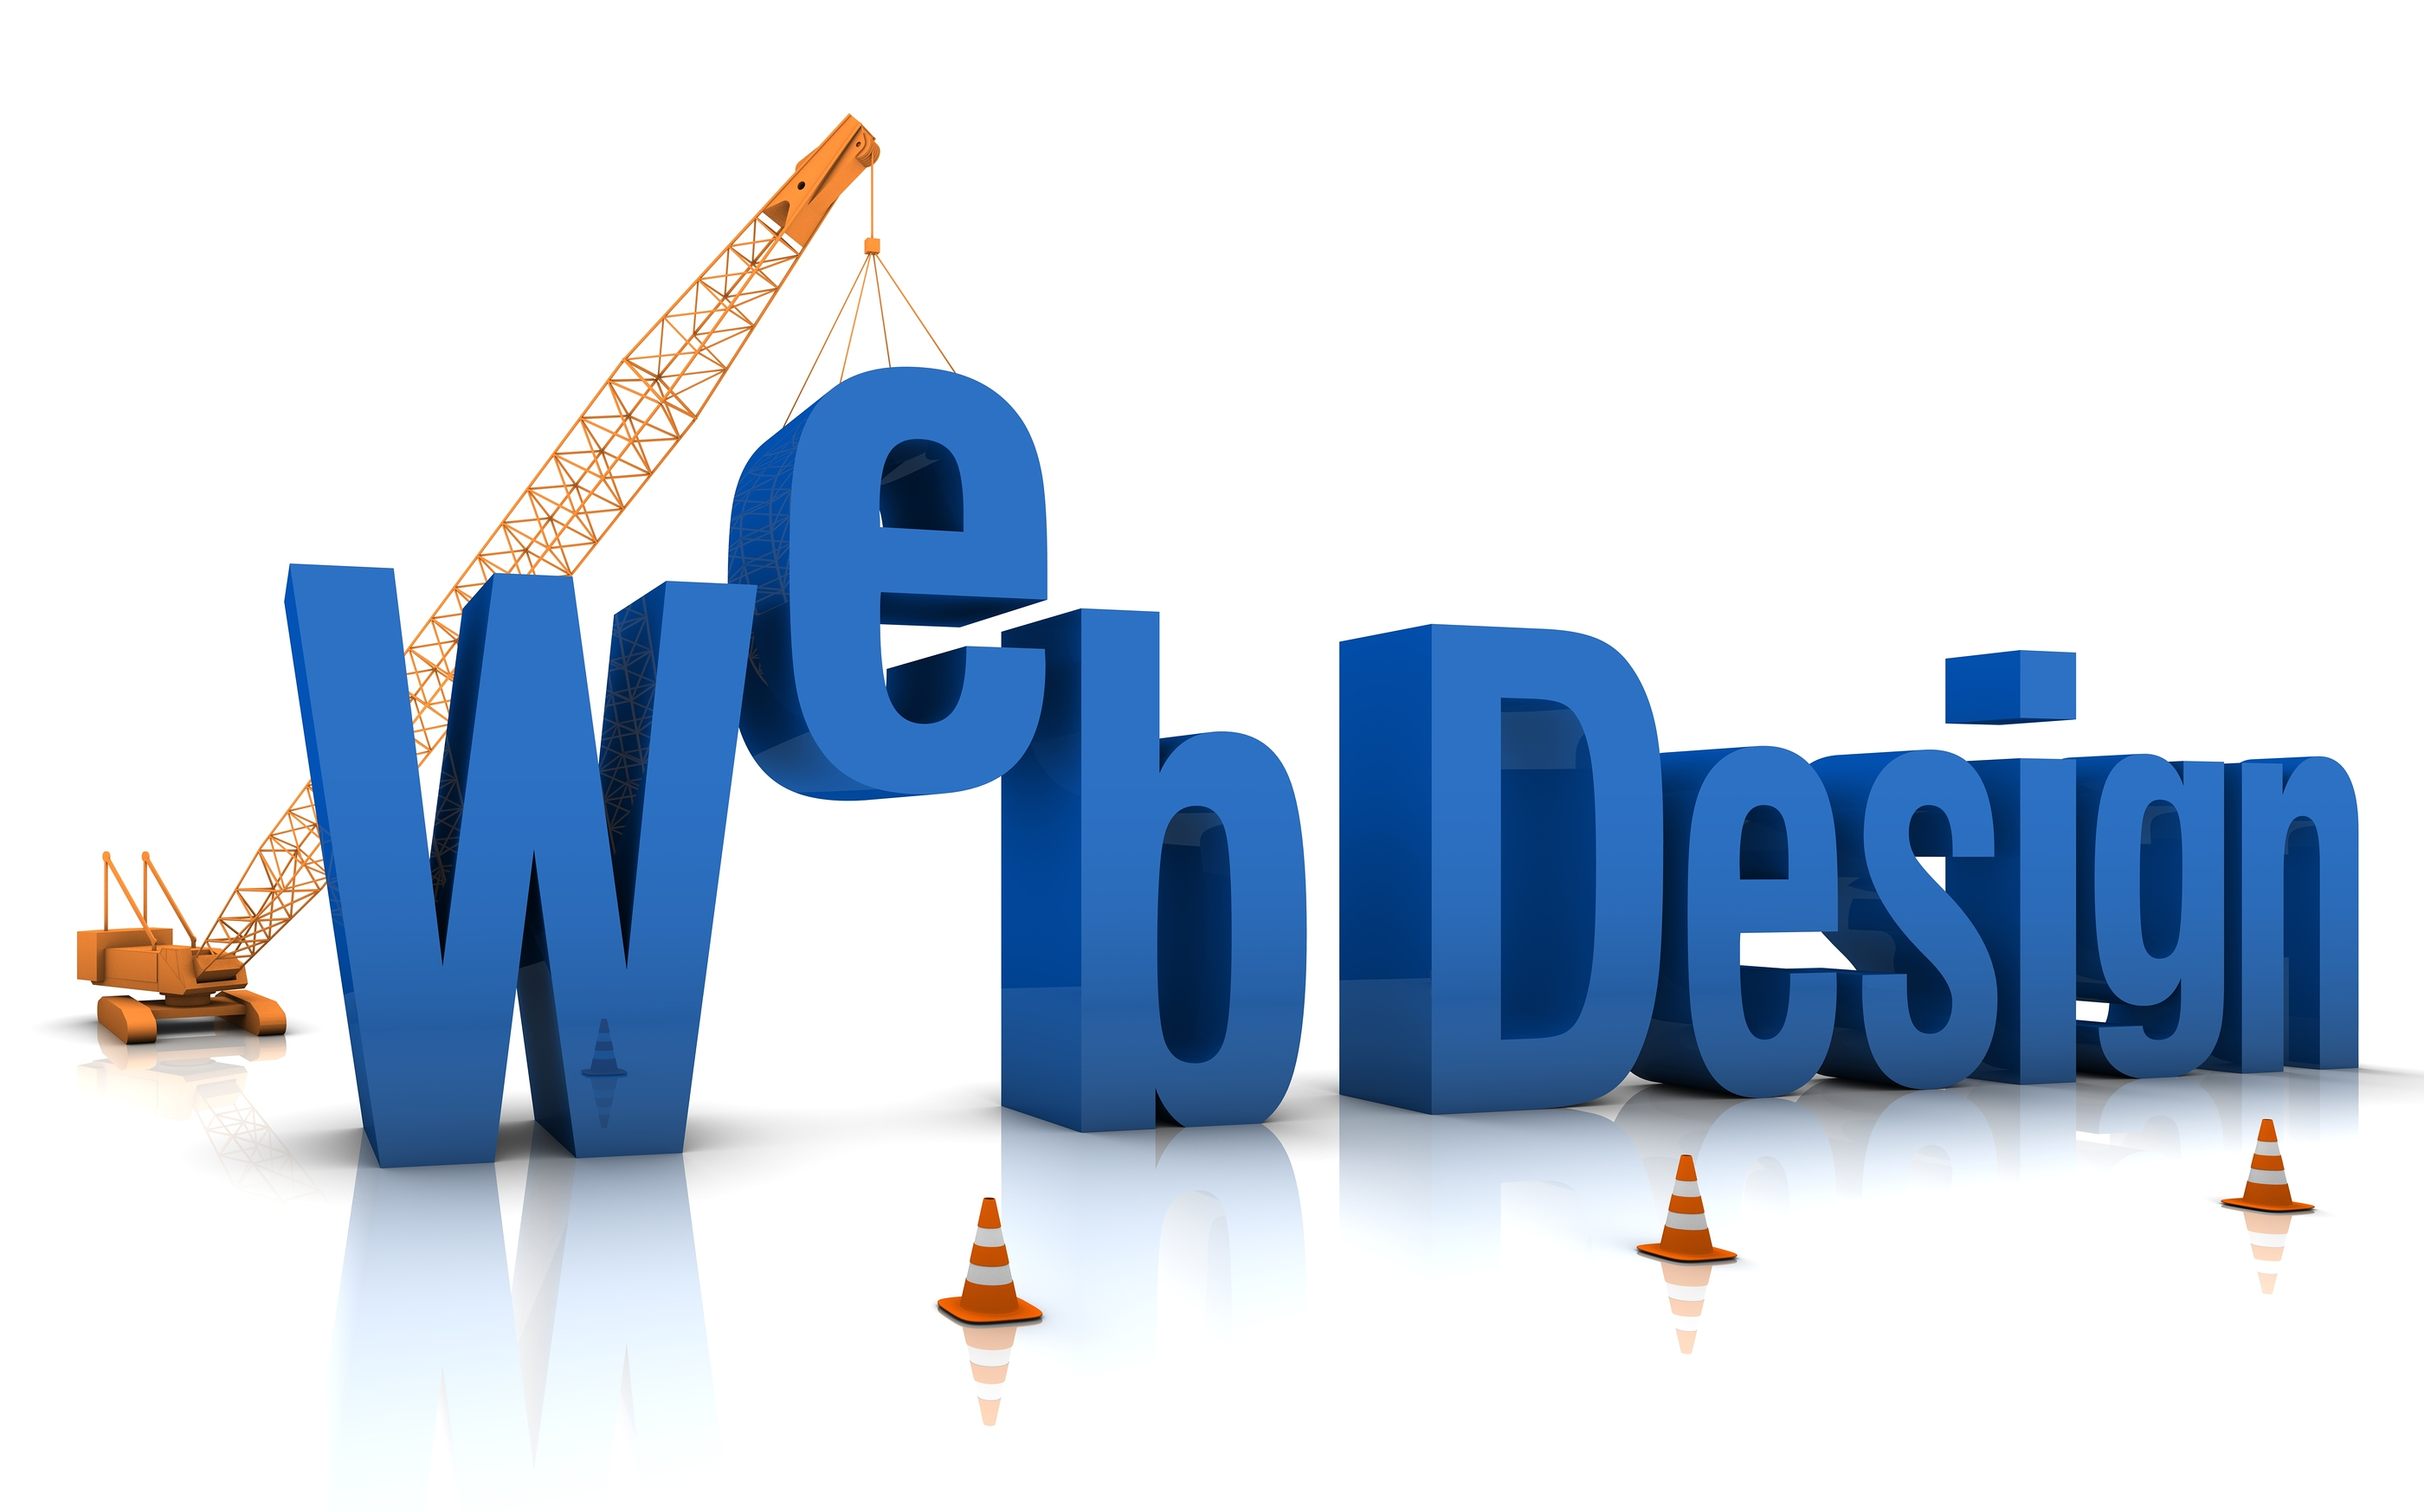 Website design services in greenville sc spark local for Online architect services